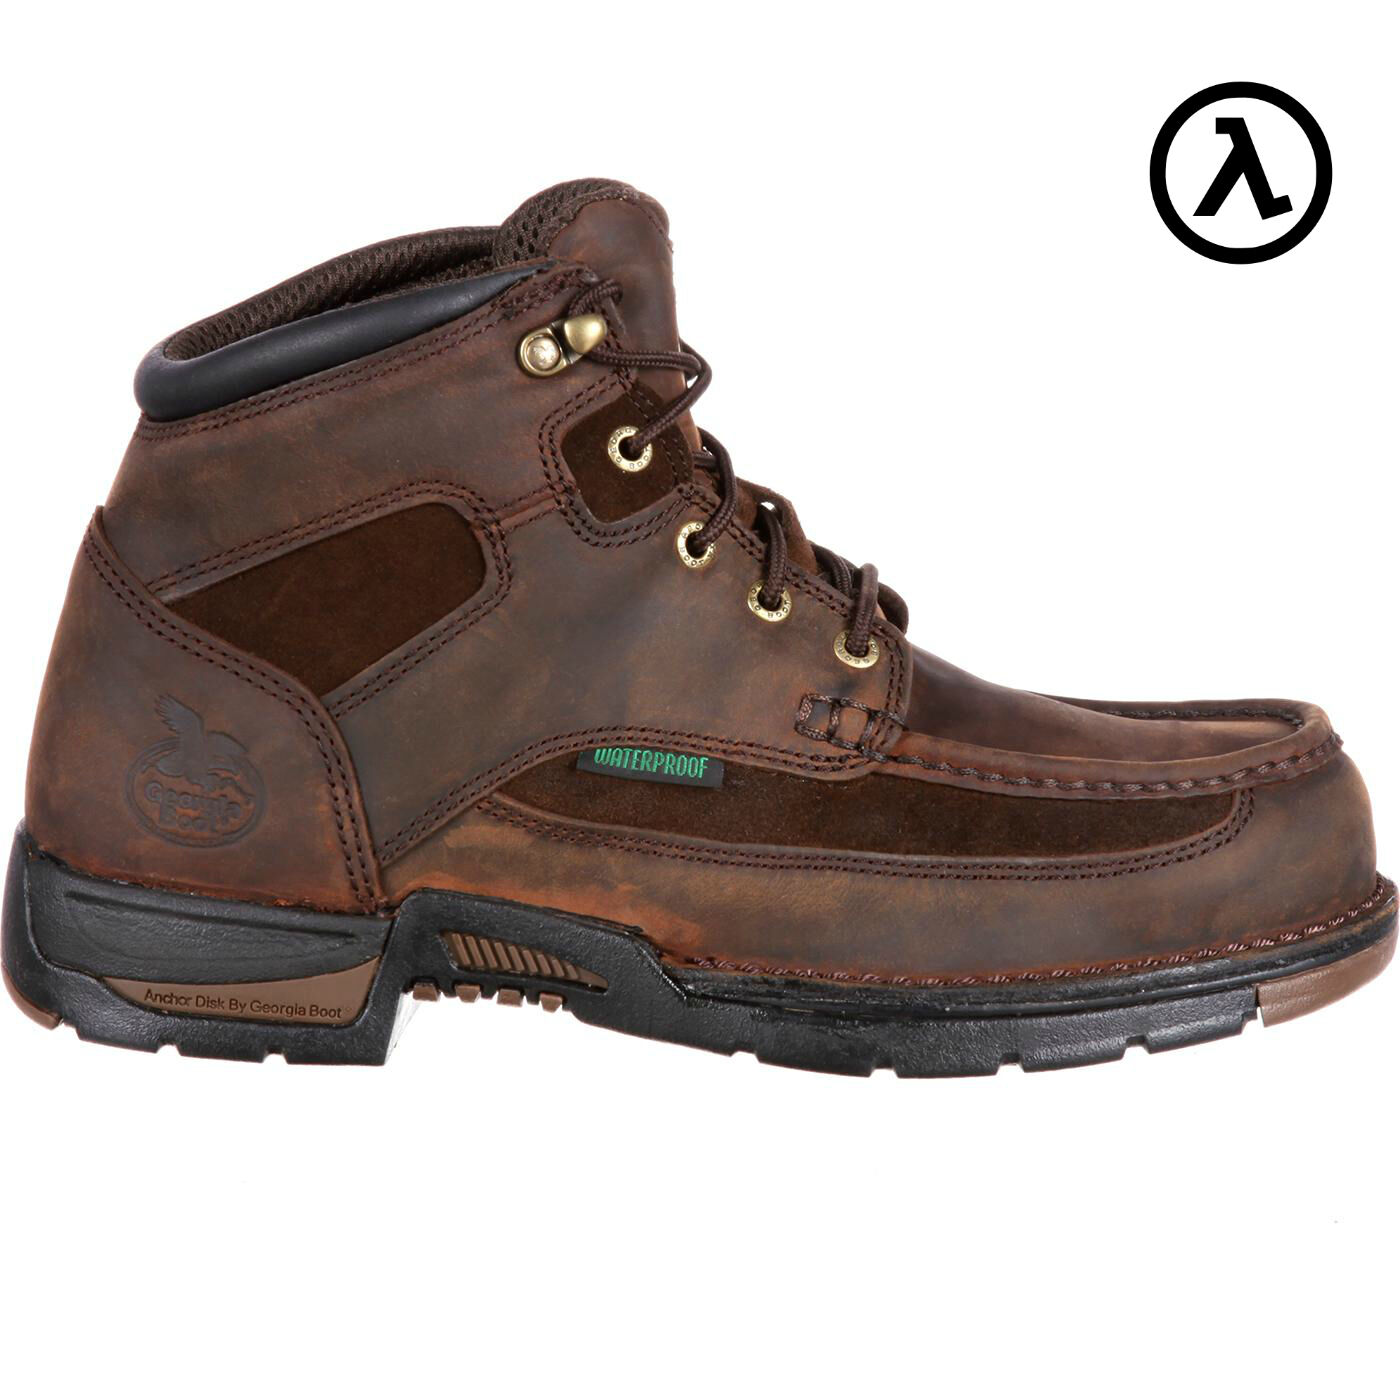 GEORGIA ATHENS STEEL TOE WATERPROOF WORK BOOTS G7603 * ALL SIZES - NEW